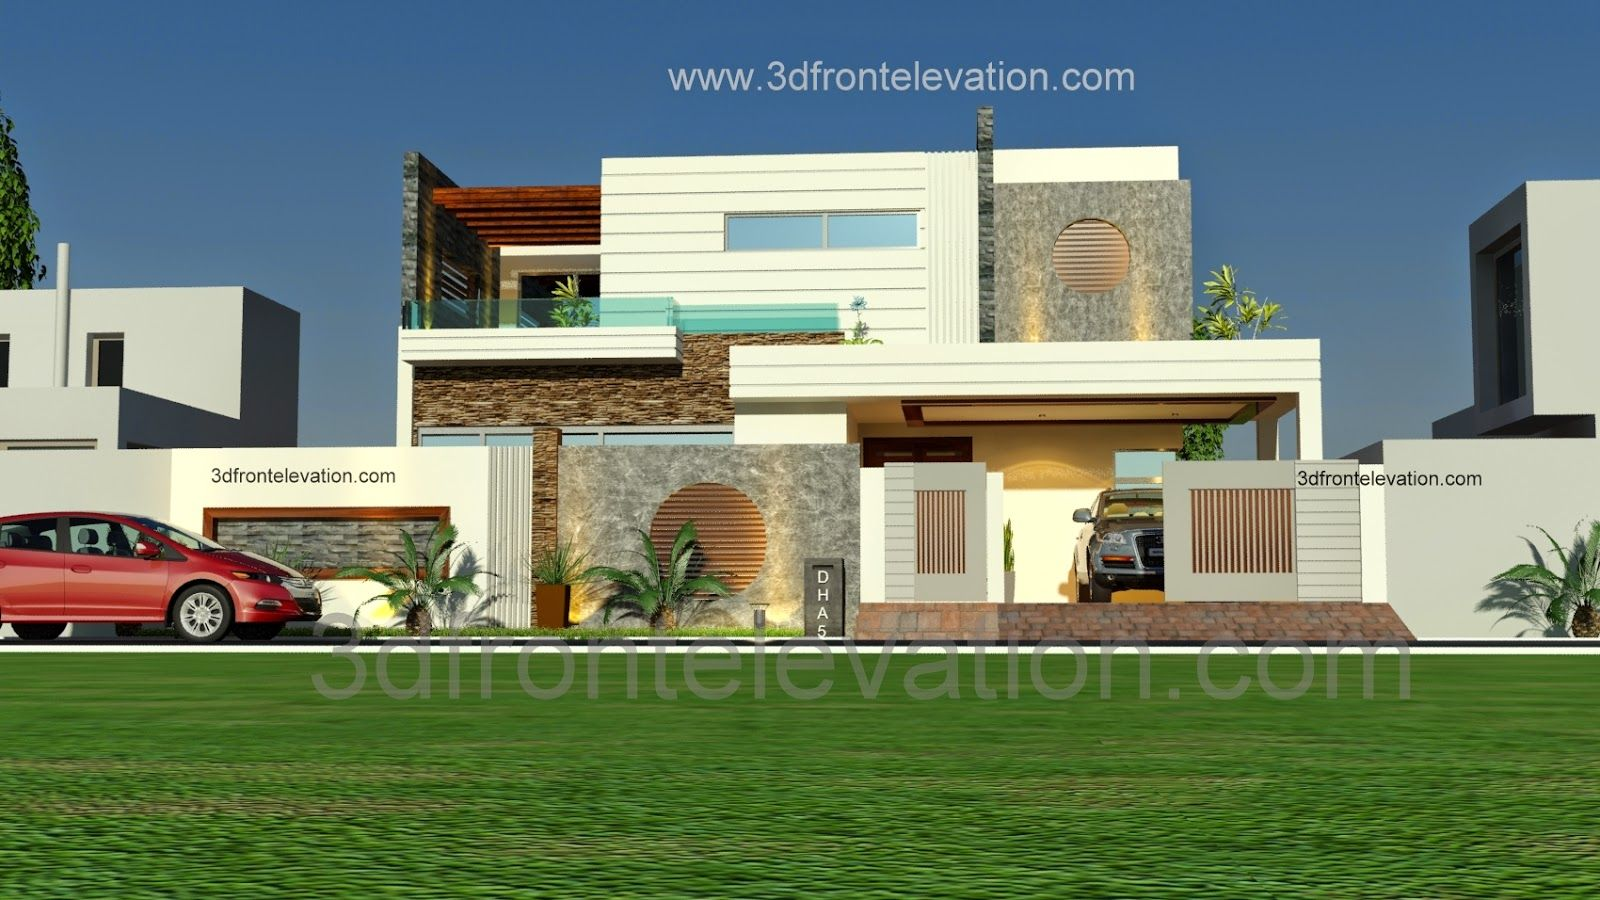 Las Vegas Mediterranean Front Elevation Design Ideas 1